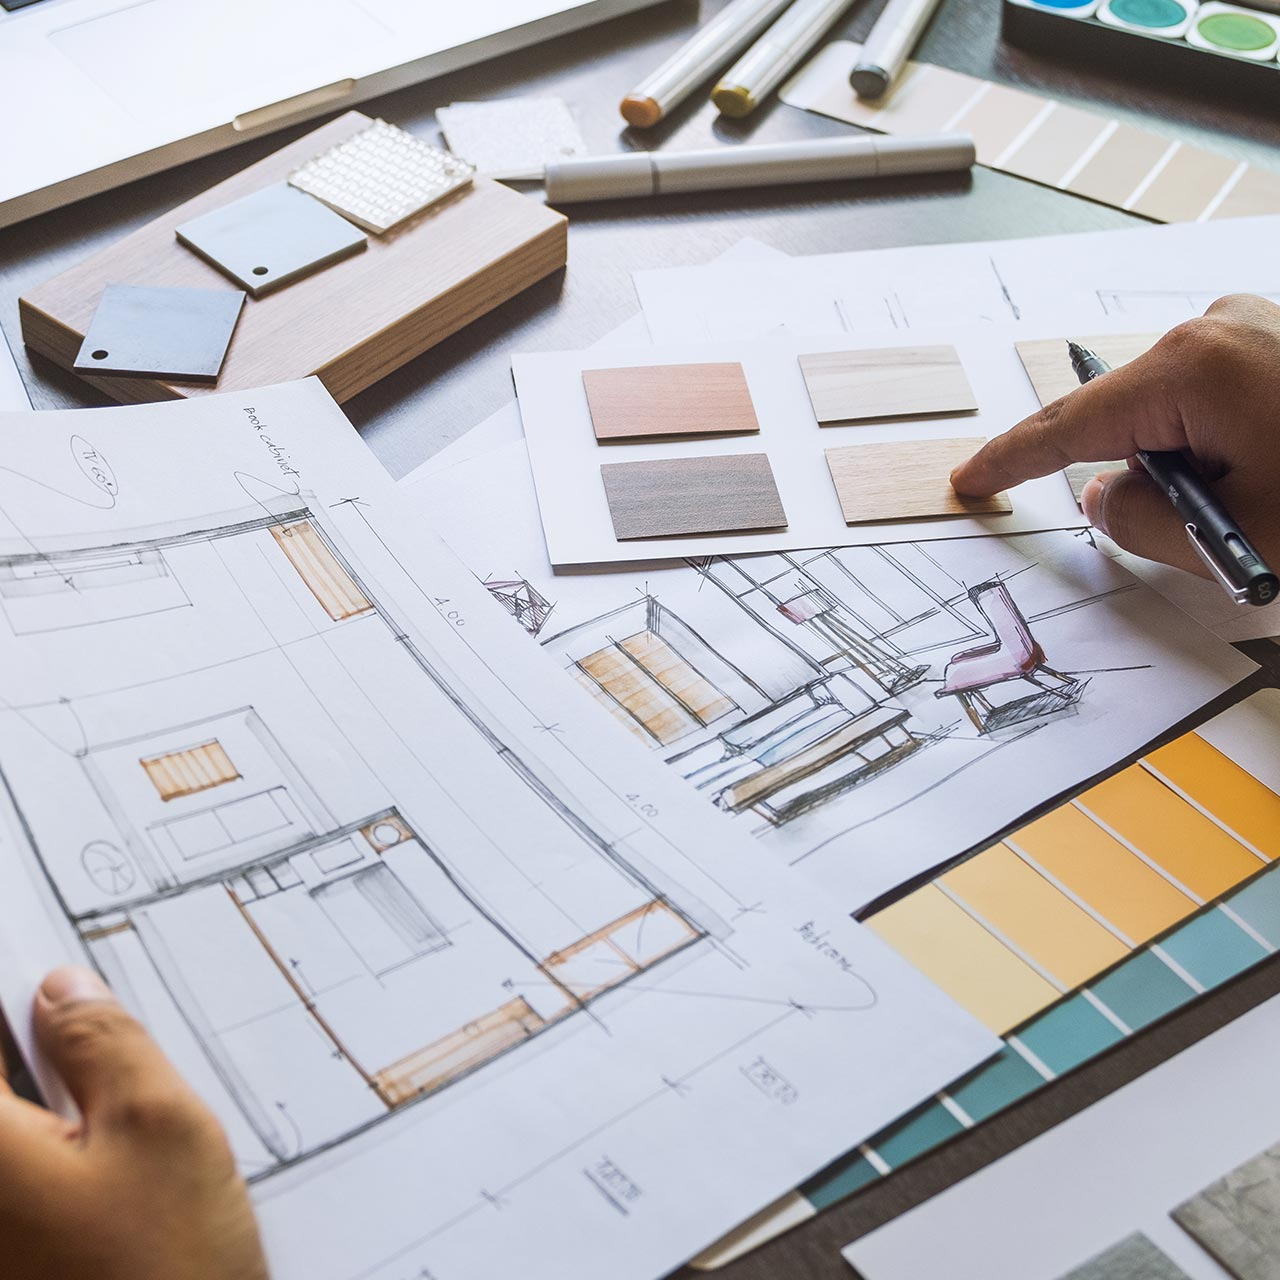 10 Questions To Ask An Interior Designer